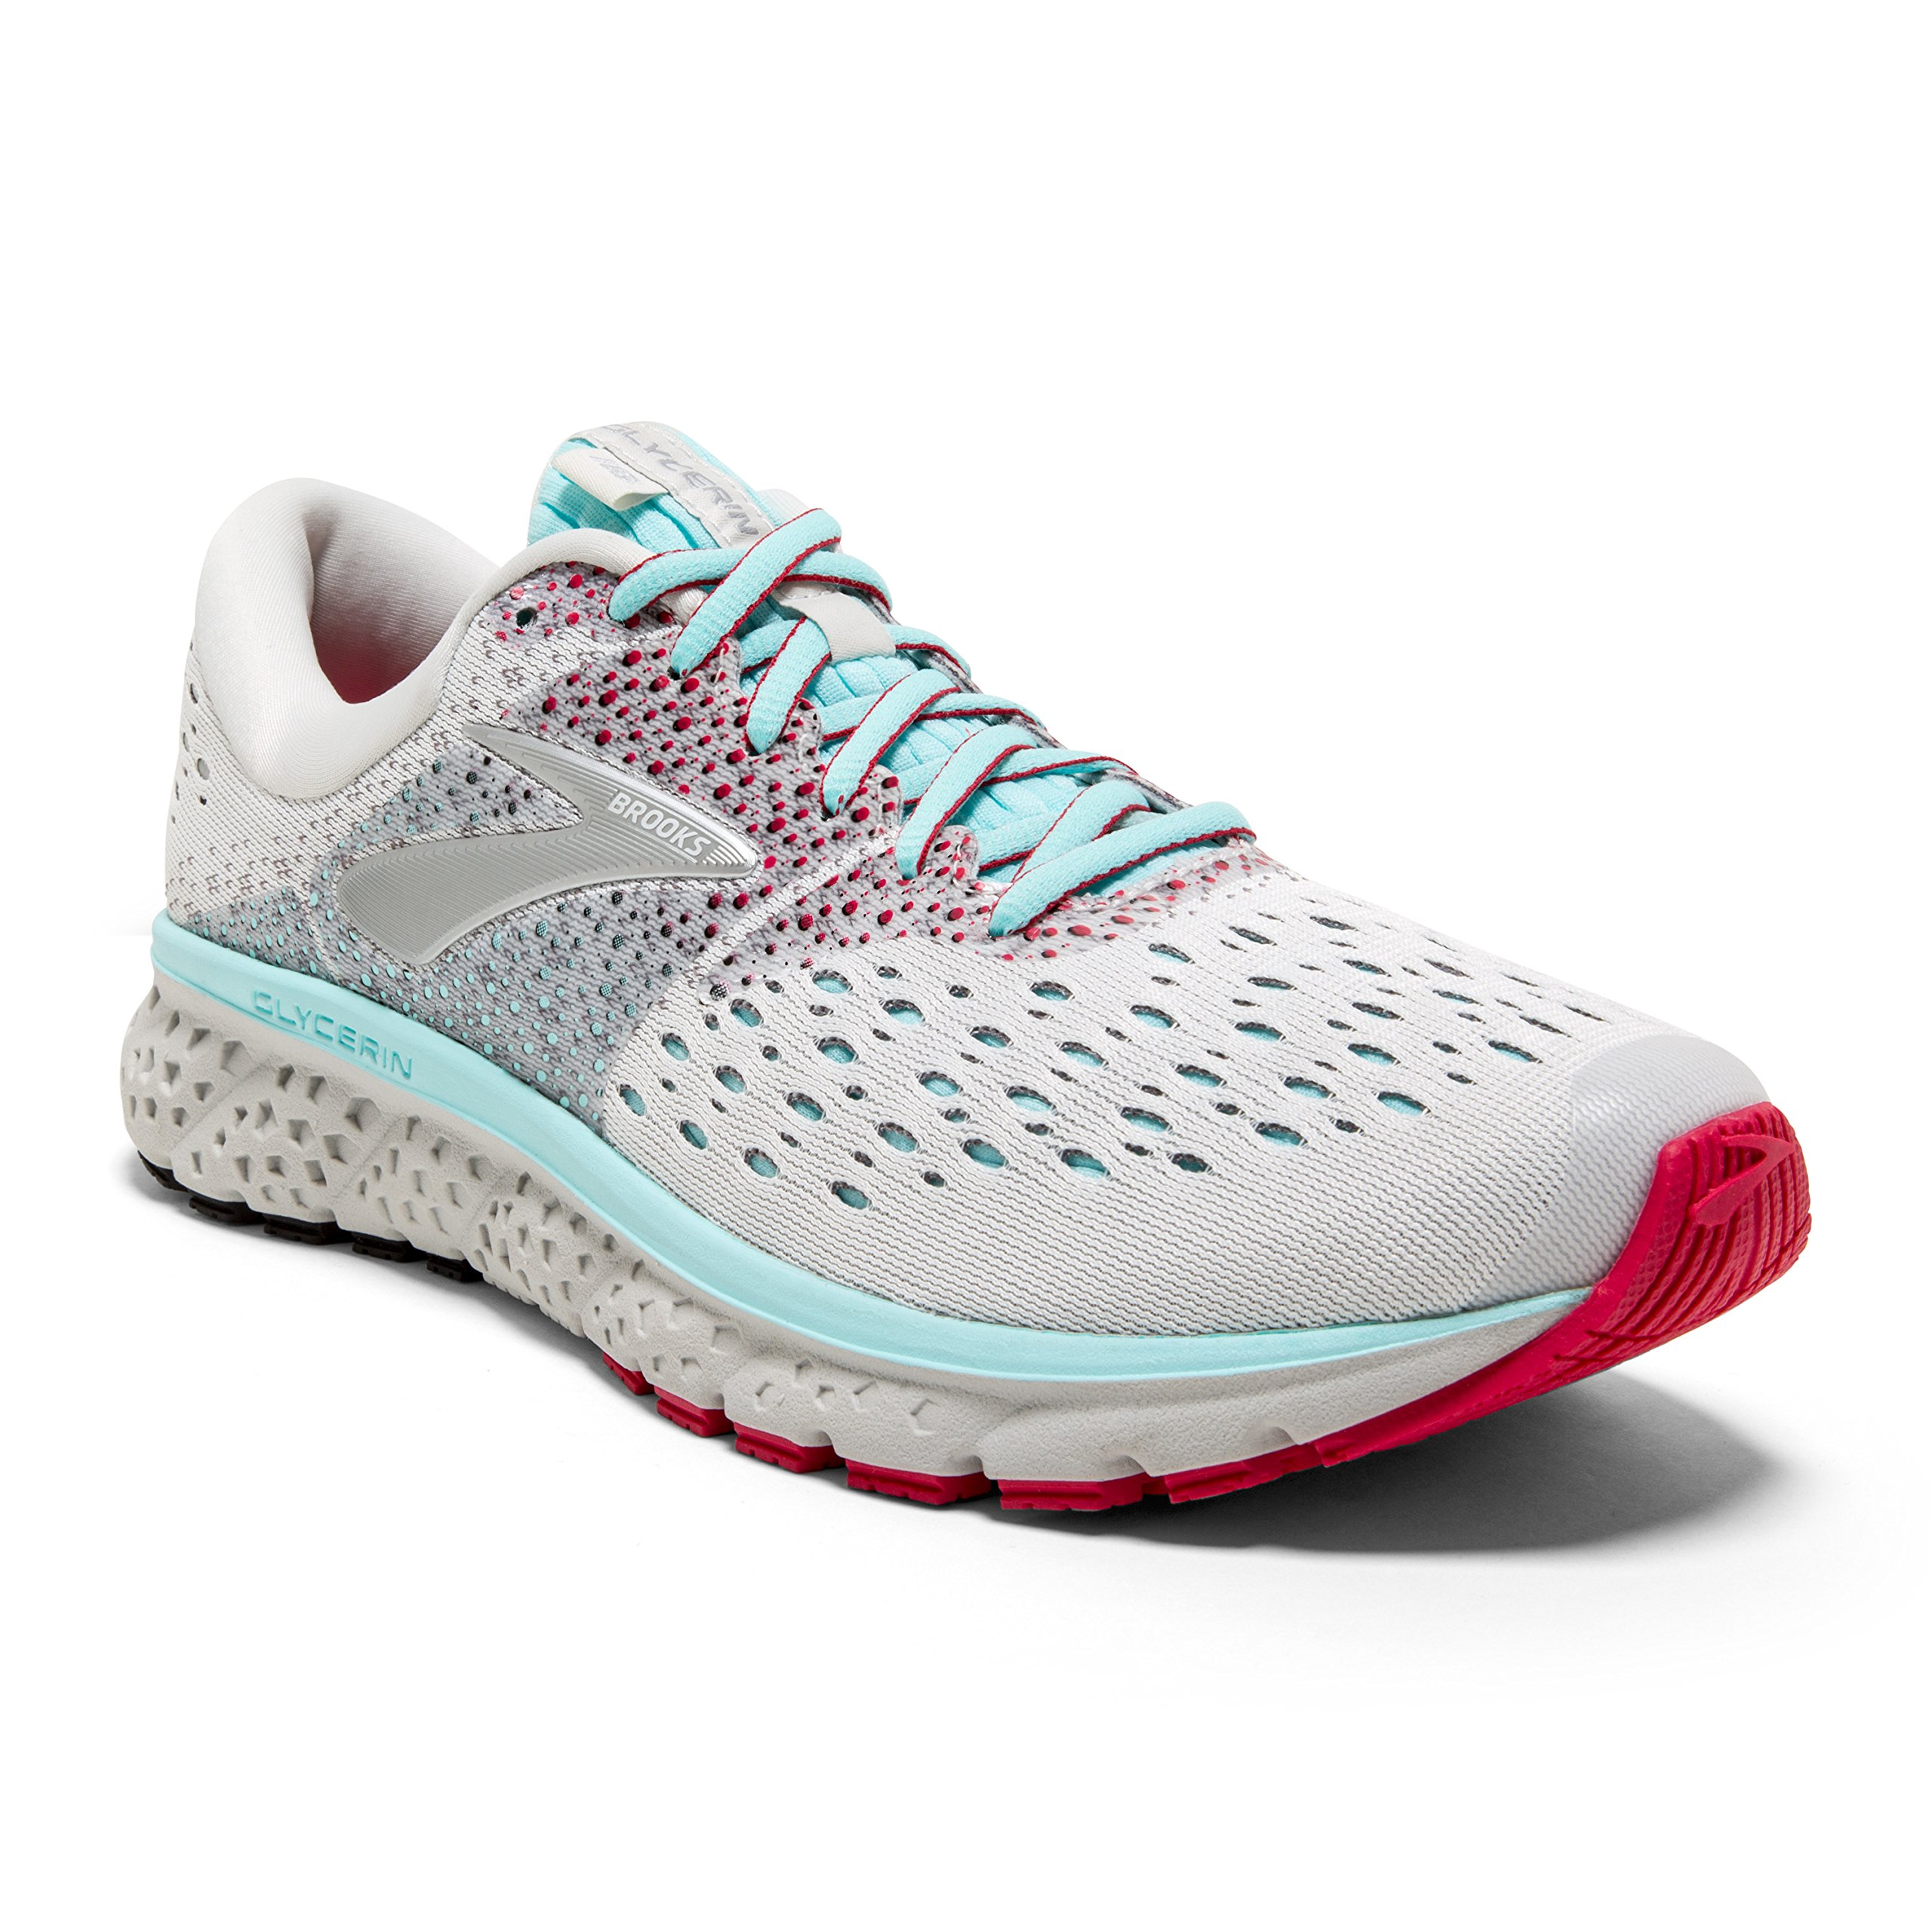 Brooks Womens Glycerin 16 - White/Blue/Pink - B - 6.0 by Brooks